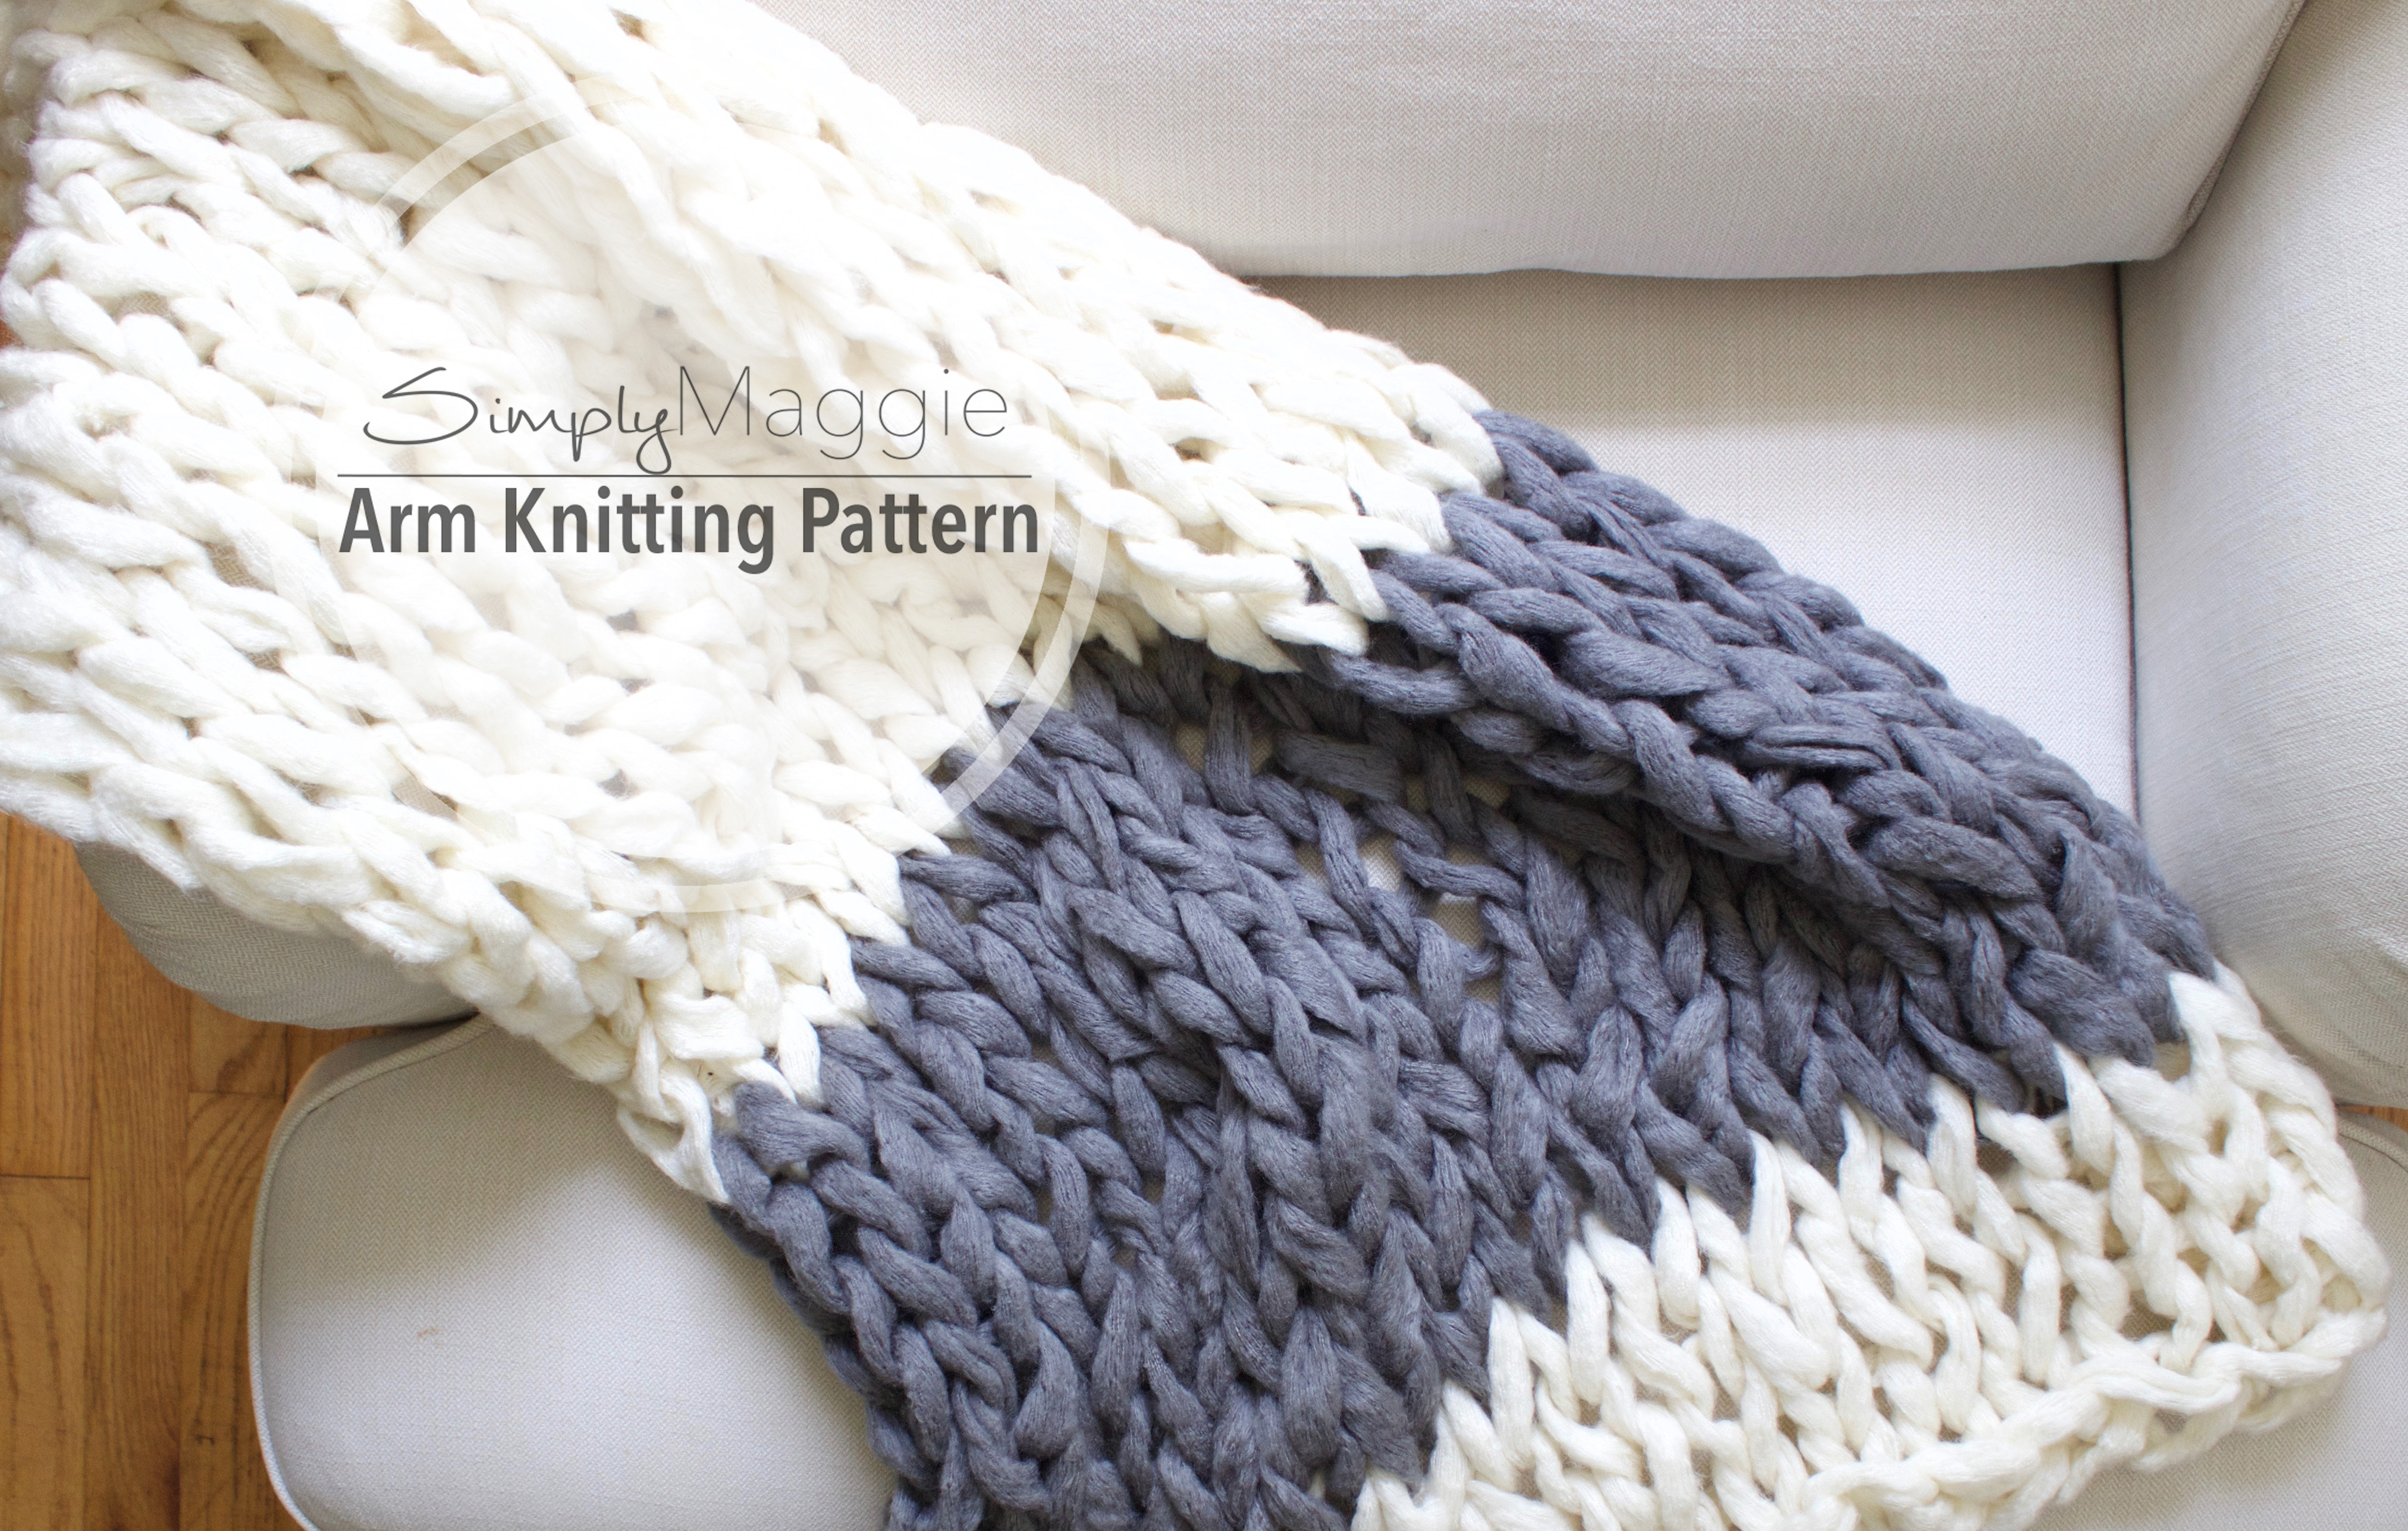 Knit and crochet simplymaggie color block throw pattern by simply maggie bankloansurffo Image collections